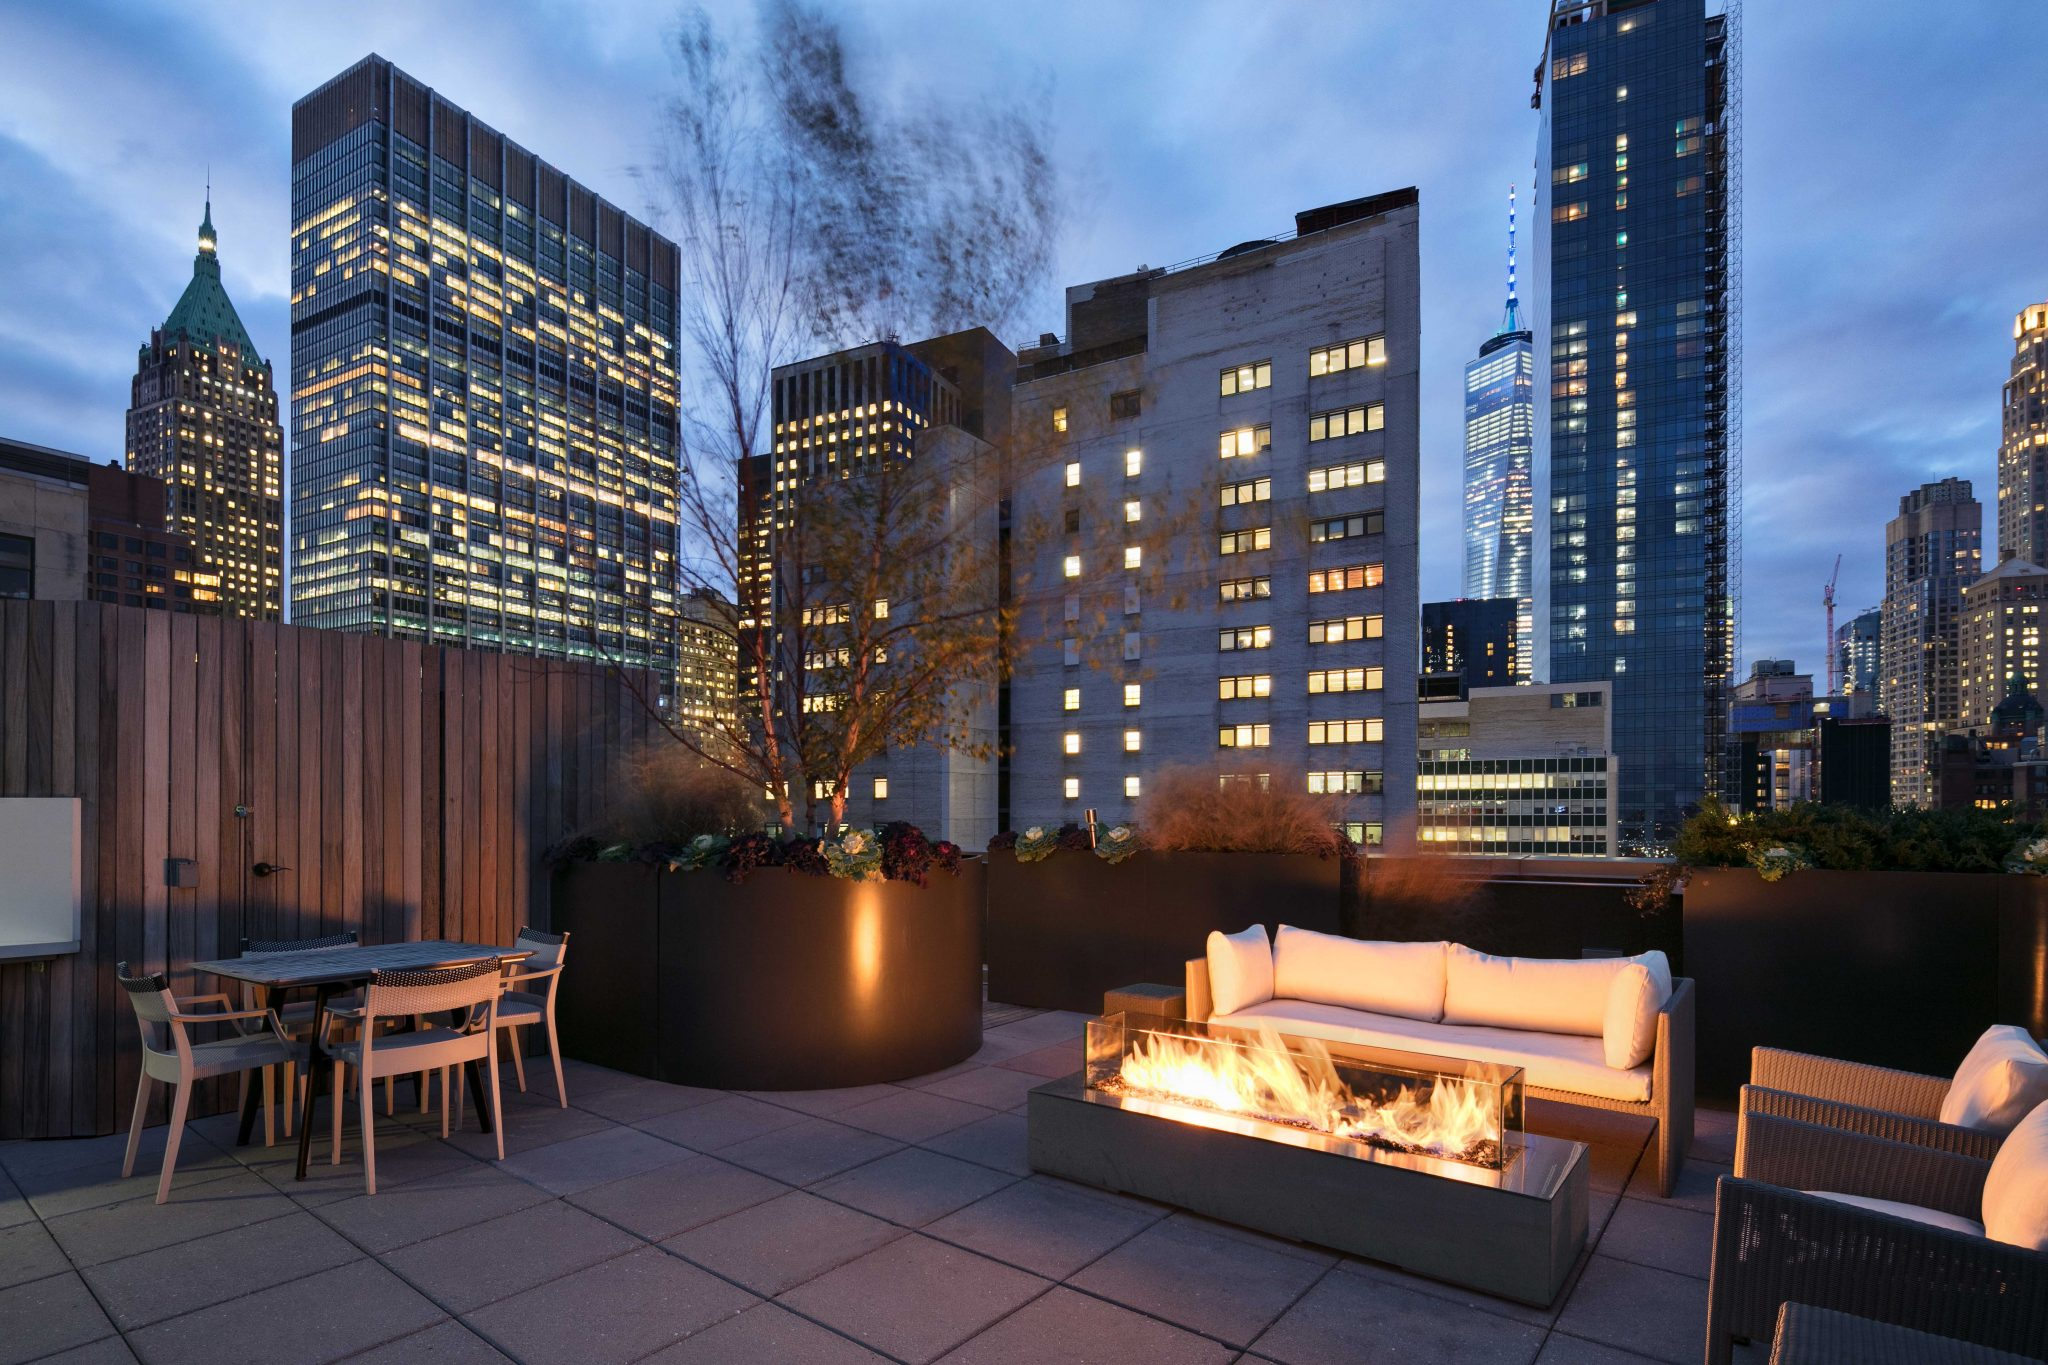 Exterior of rooftop with fire pit, couch and dining table with other downtown New York buildings in background